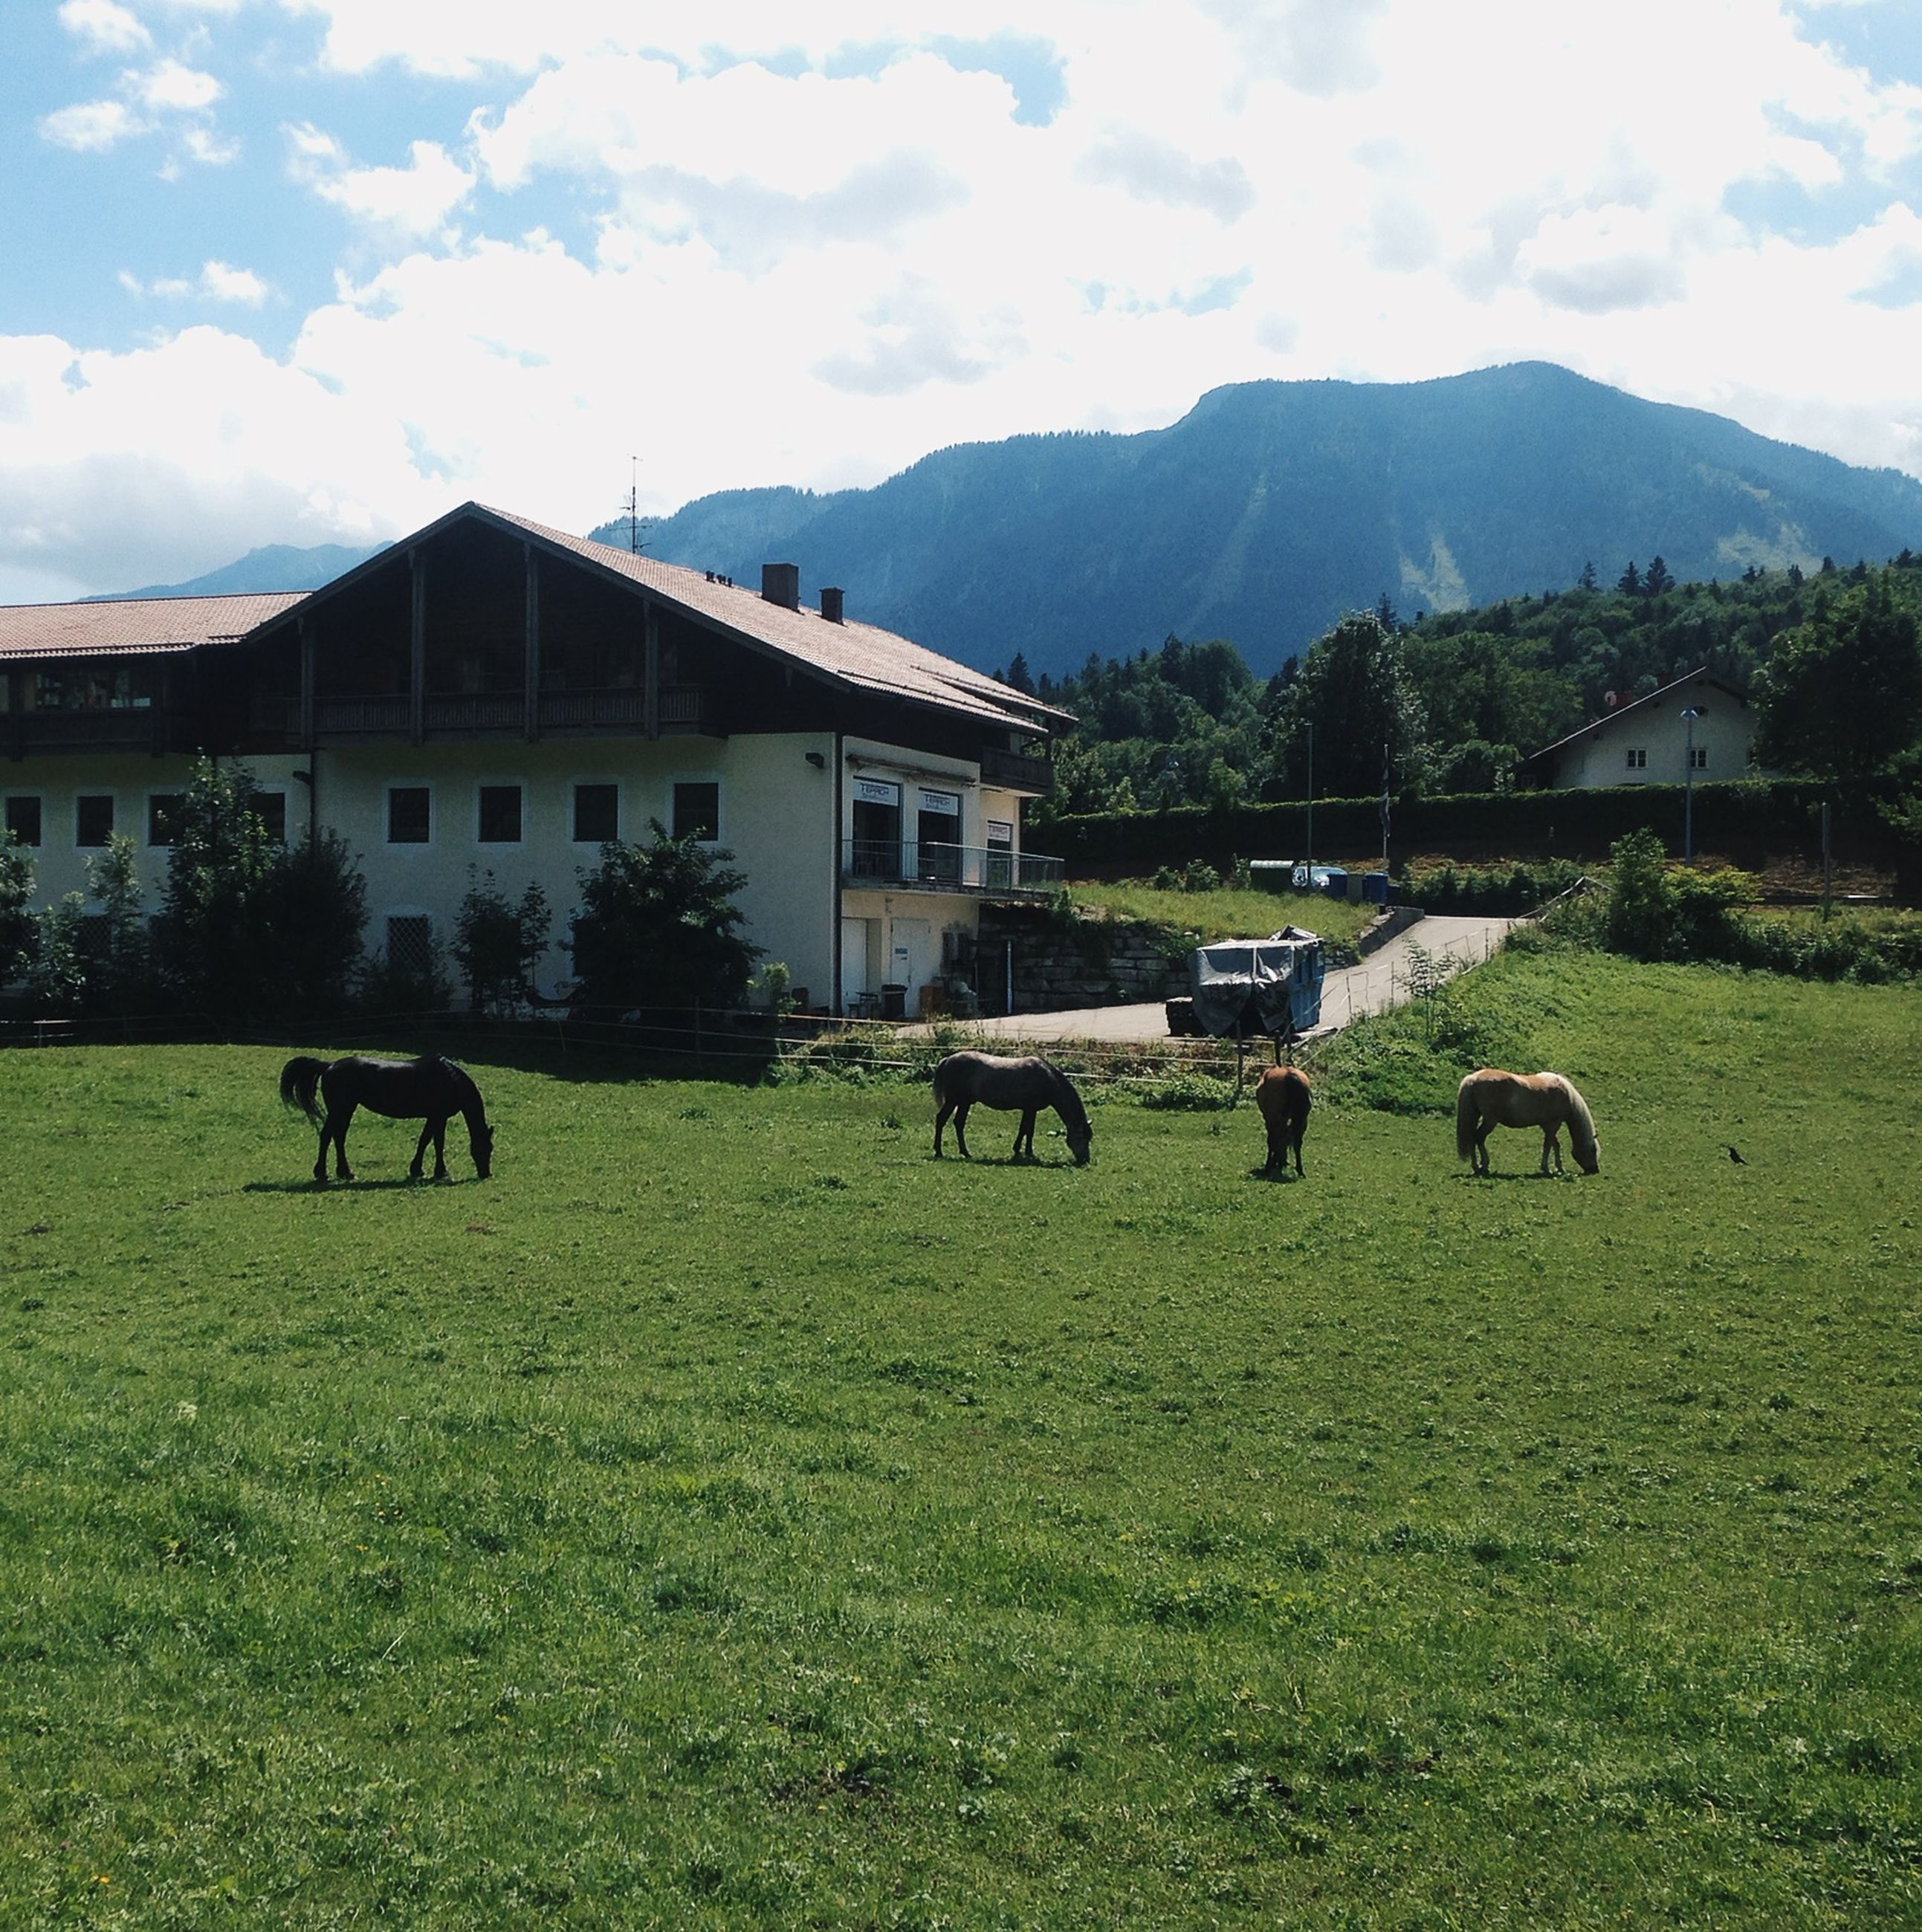 grass, sky, building exterior, animal themes, domestic animals, mountain, architecture, built structure, house, cloud - sky, livestock, field, green color, tree, cloud, landscape, horse, mountain range, grassy, mammal